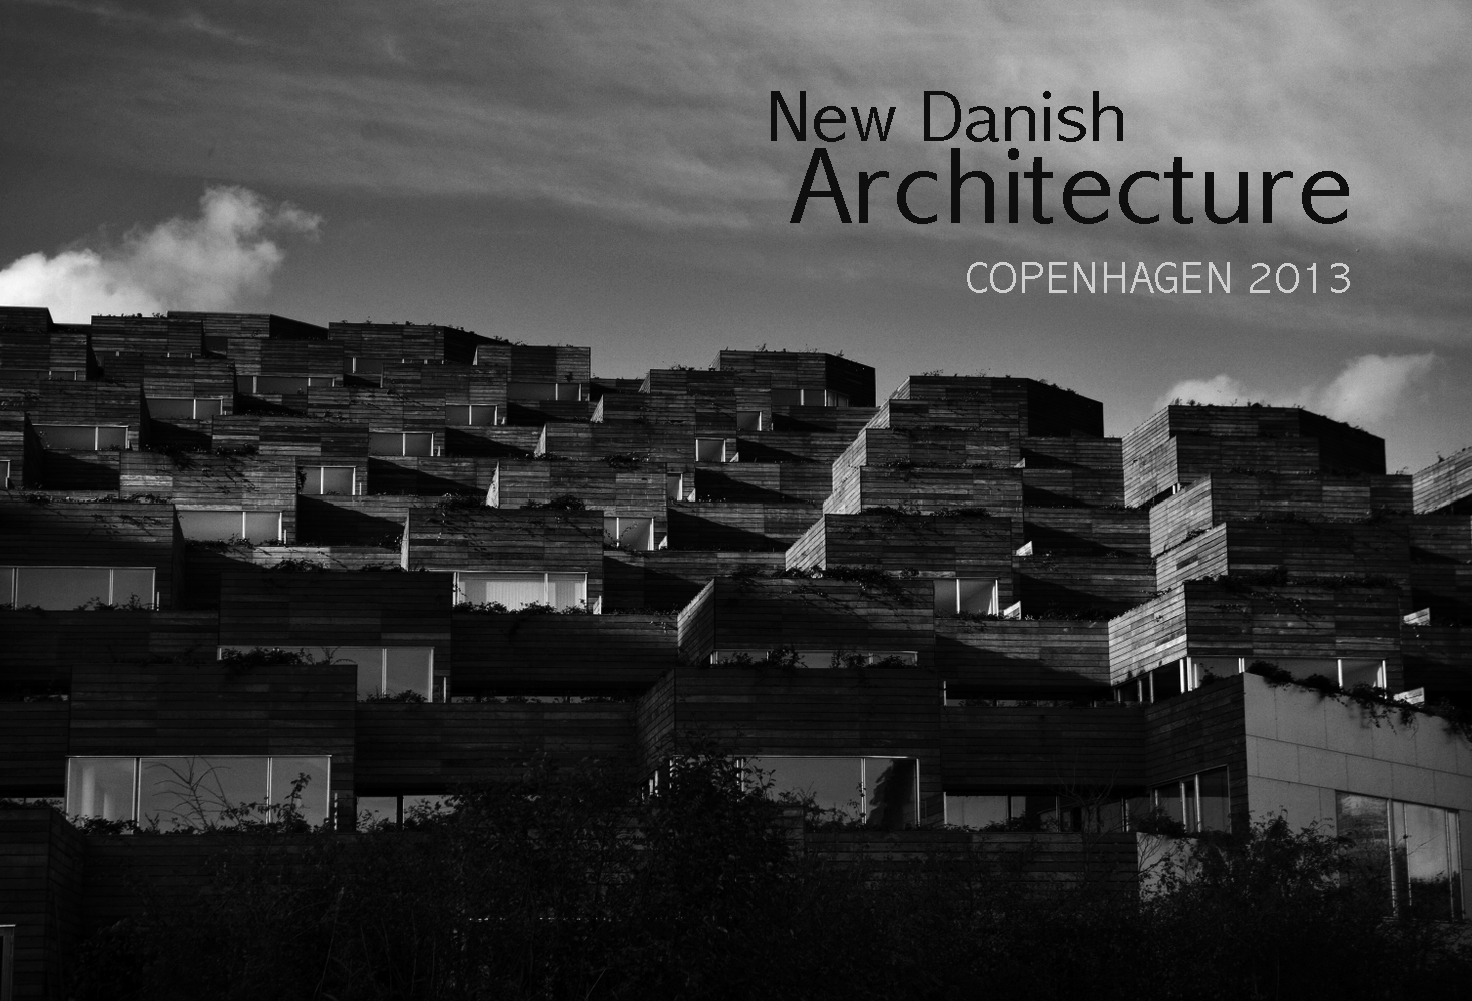 New Danish Architecture